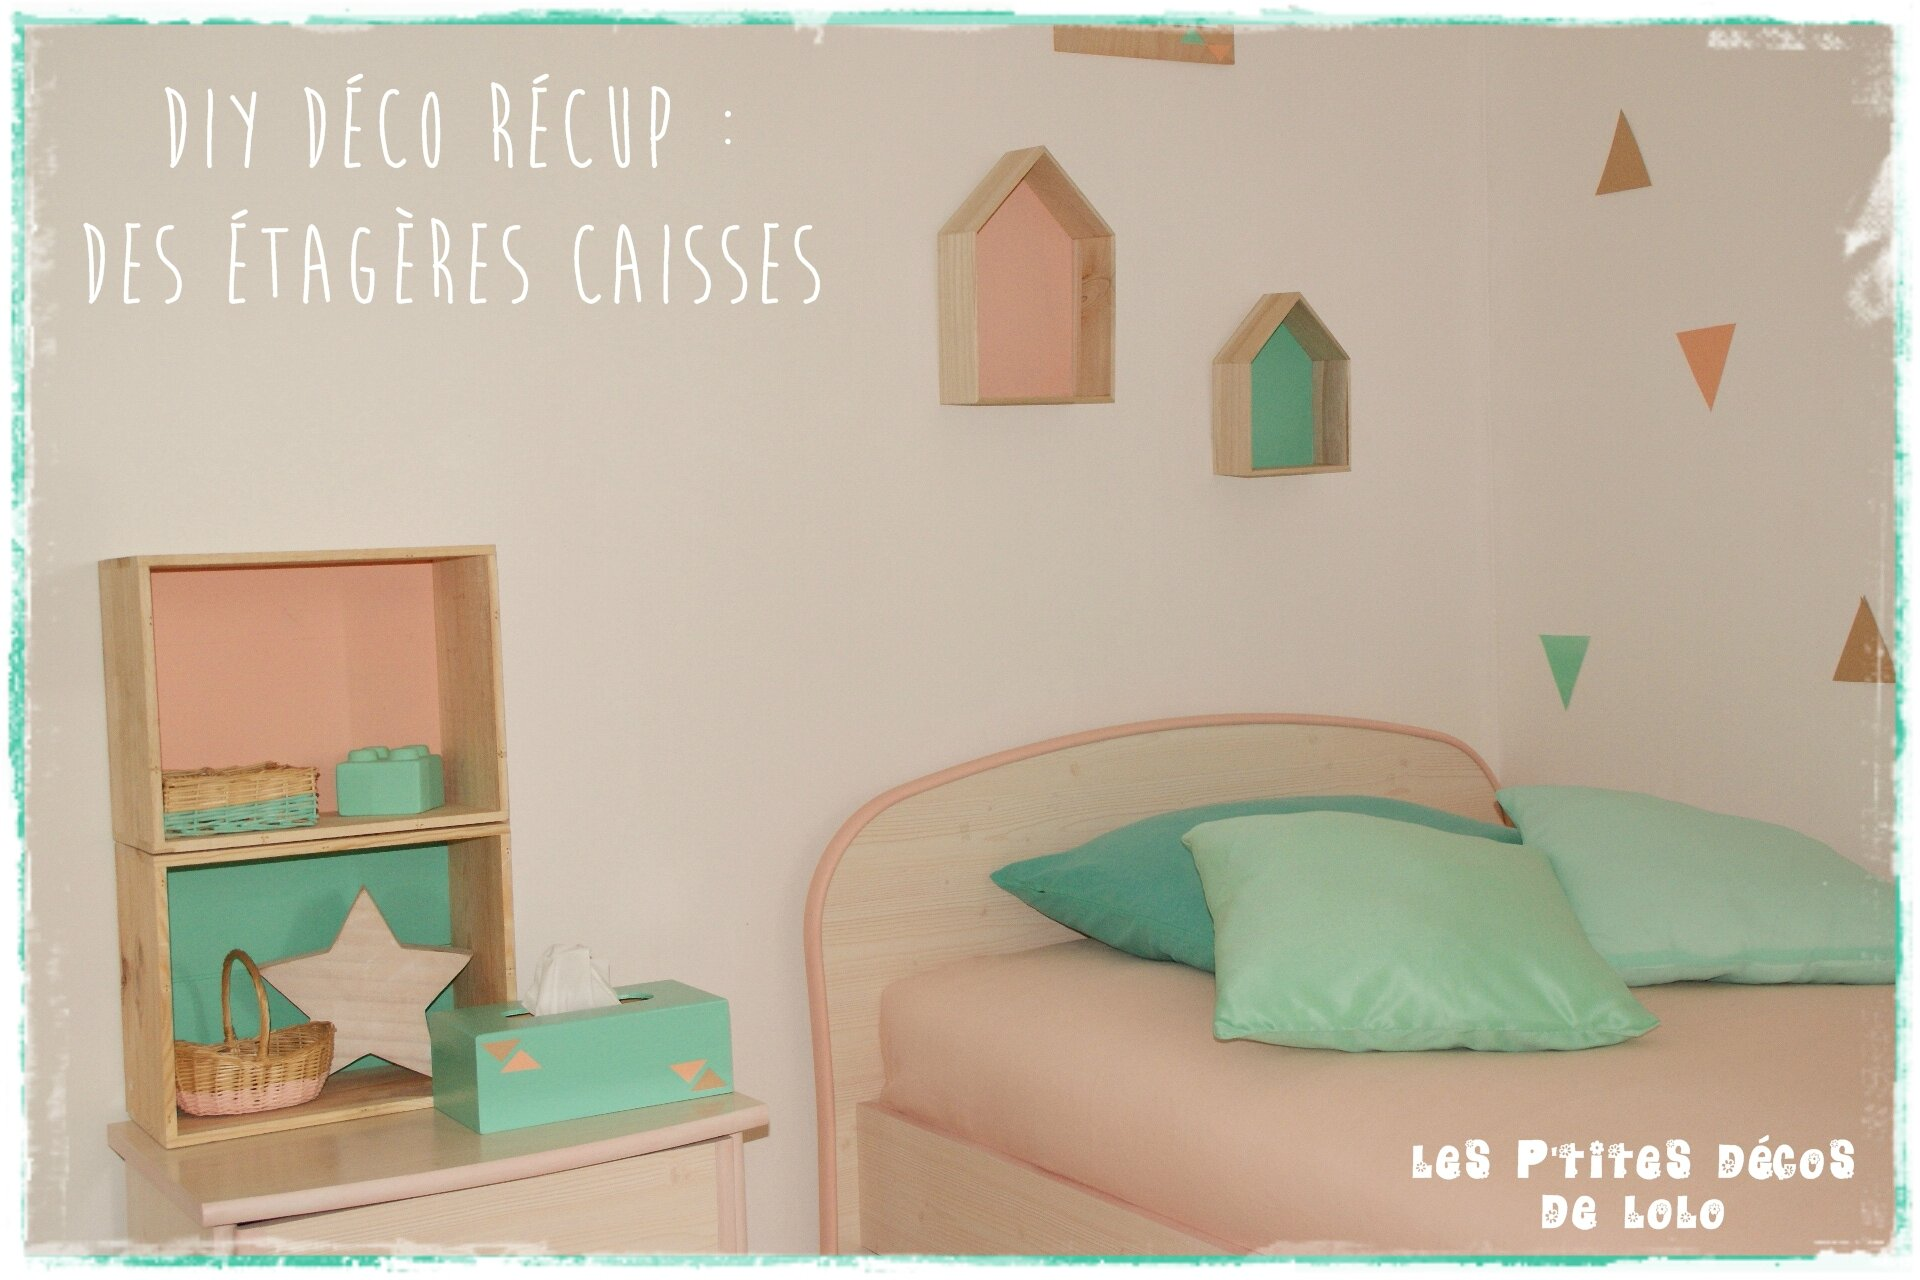 diy d co r cup des tag res caisses les p 39 tites d cos de lolo. Black Bedroom Furniture Sets. Home Design Ideas